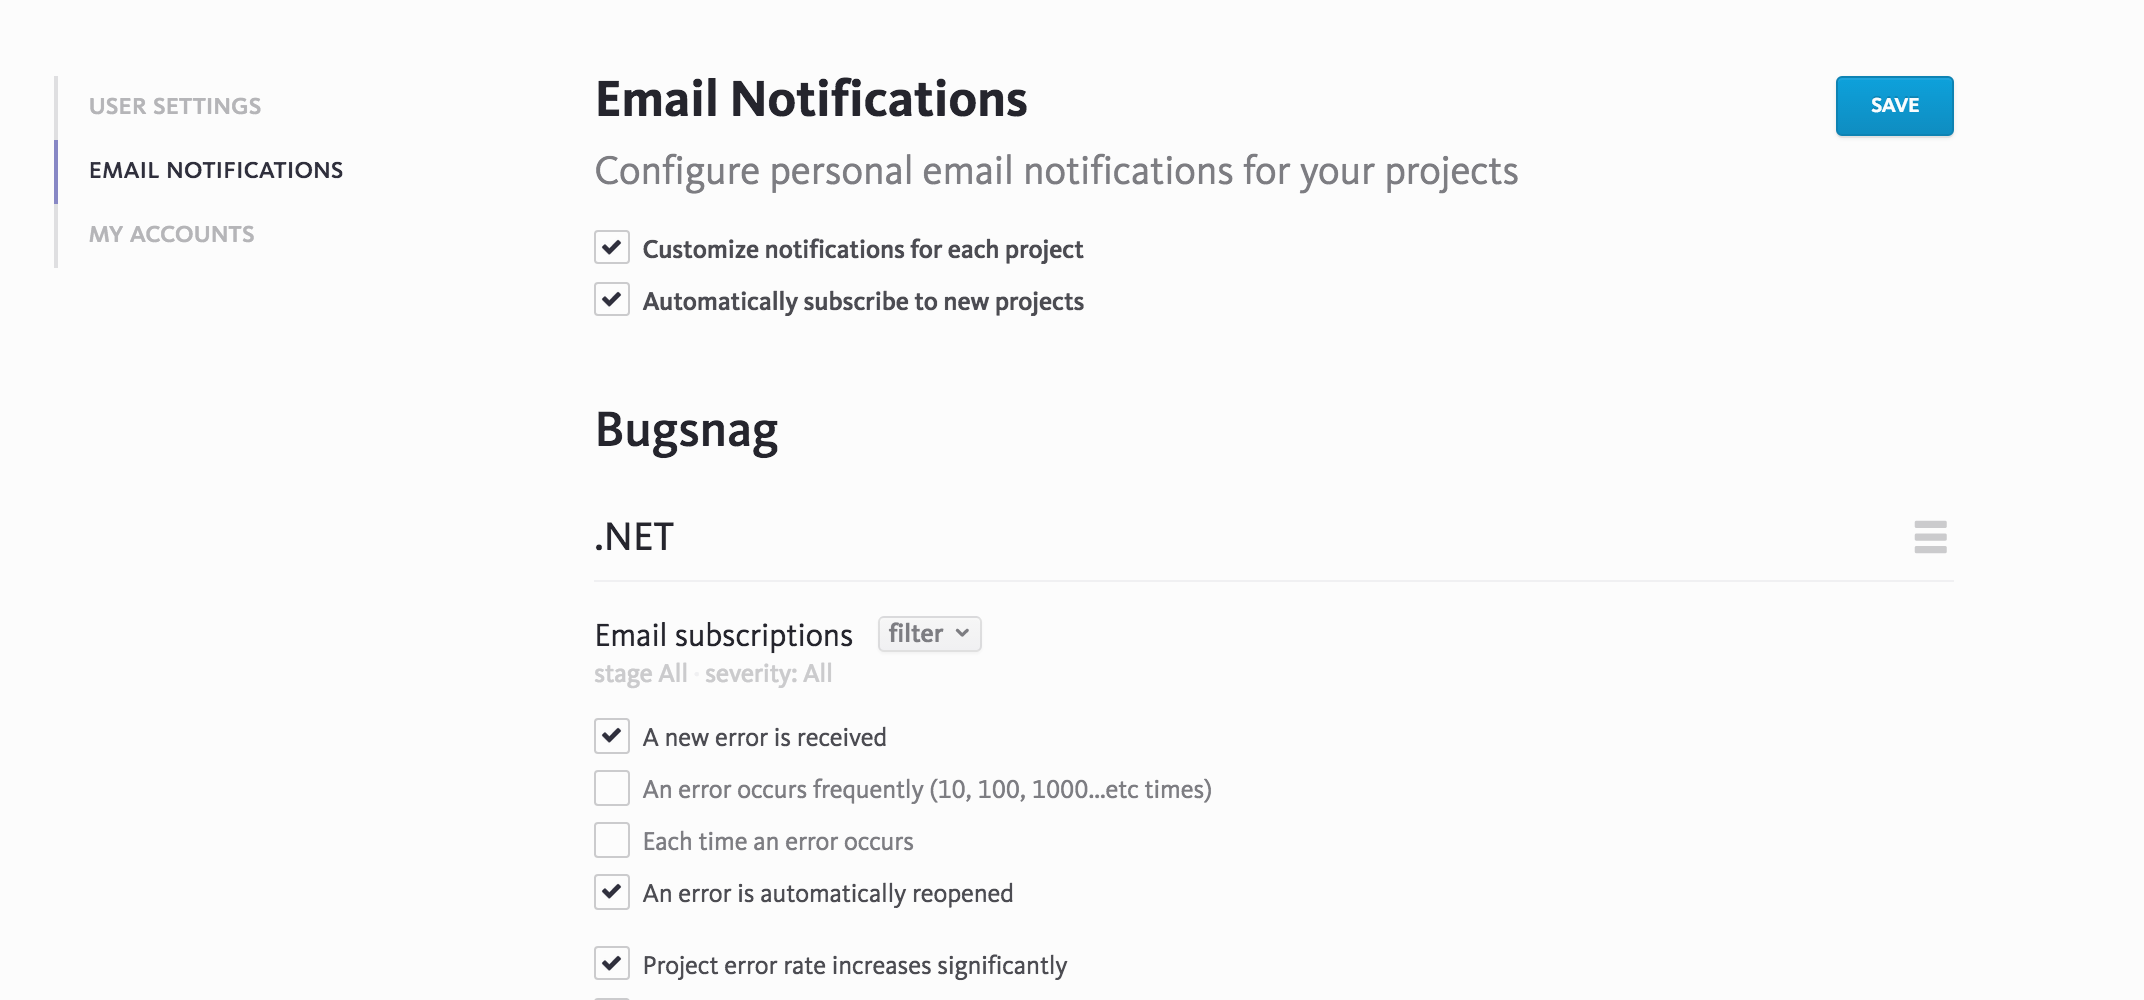 Email settings